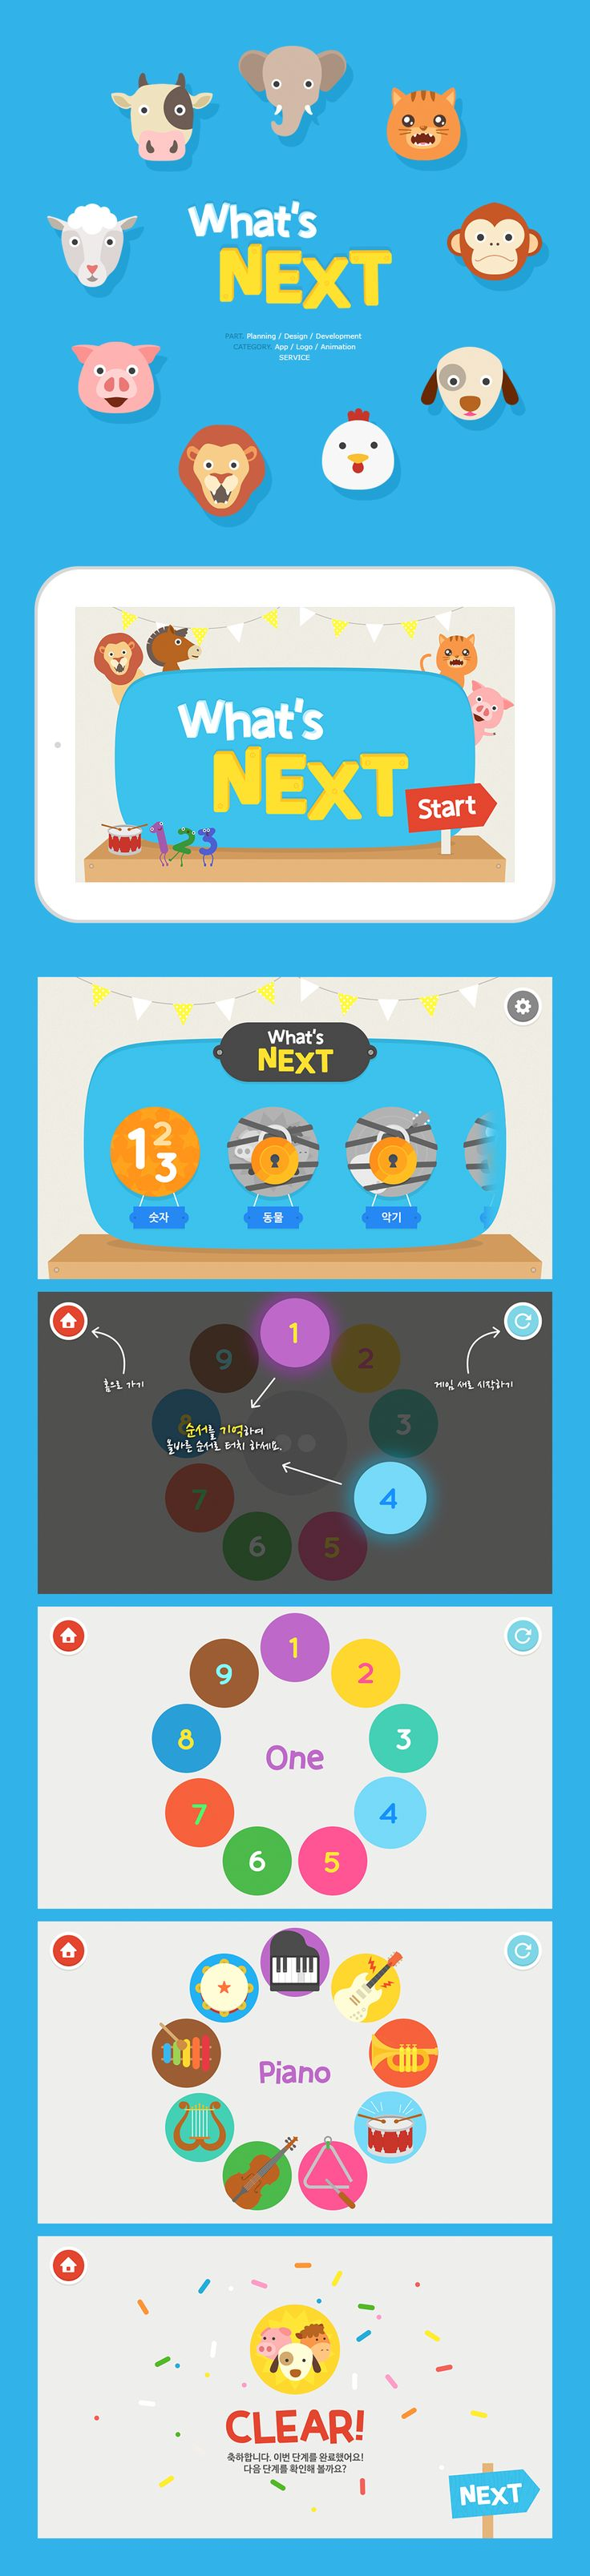 """whatsnext"" education game app"